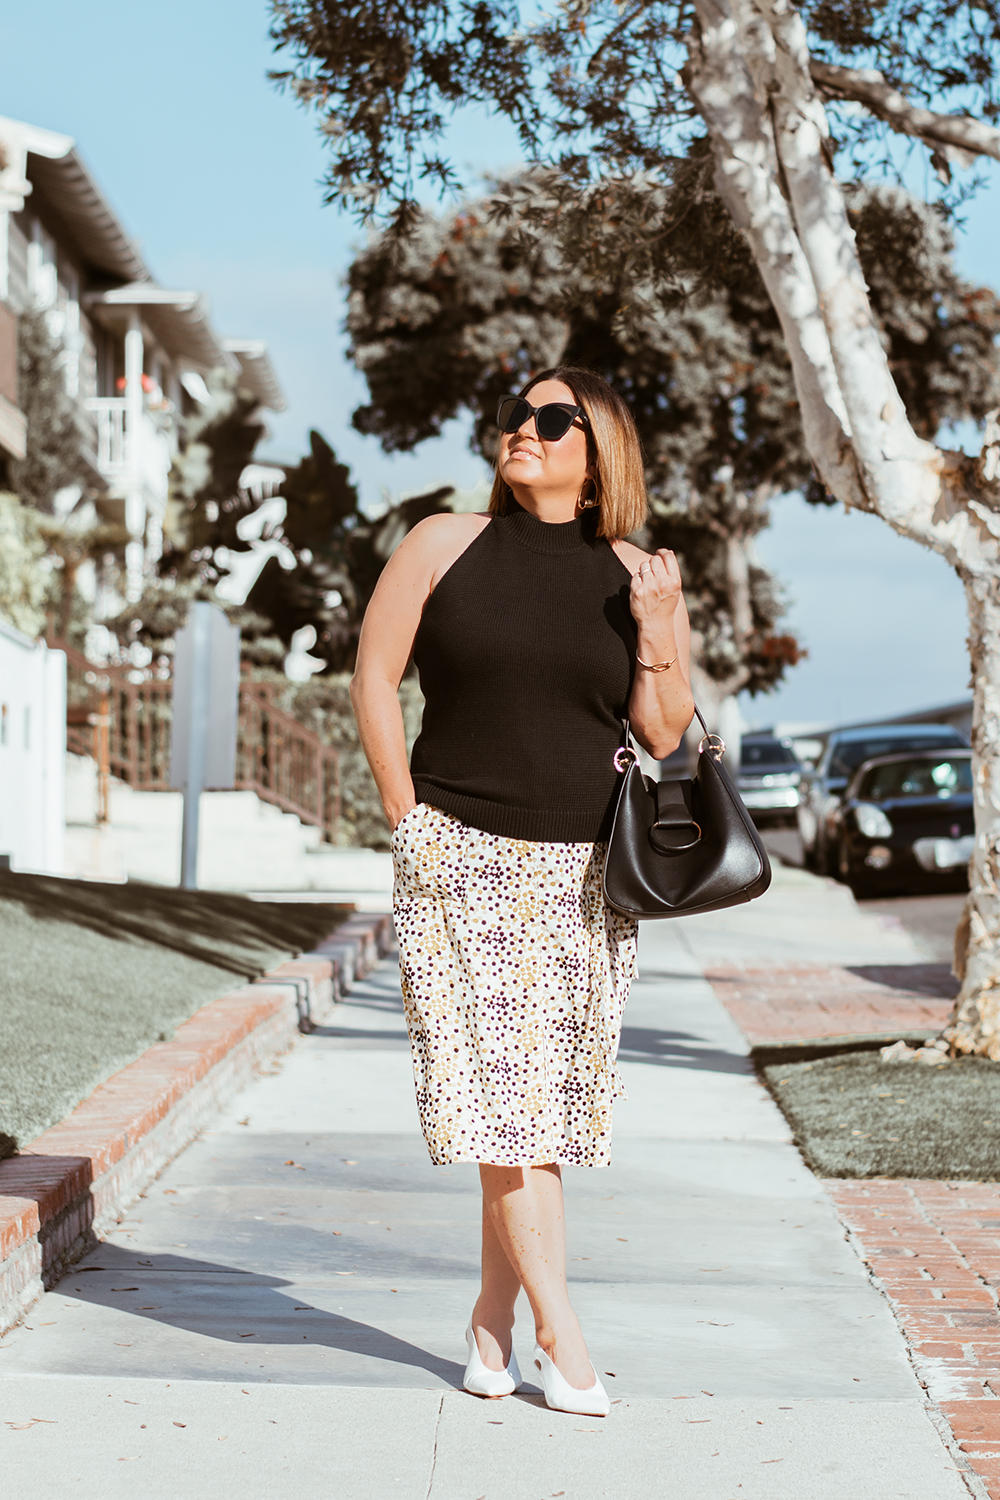 Vintage Print Skirt Target The Biggest Trends for 2018 Barefoot in LA Fashion Blog Style Ideas Outfits 0027